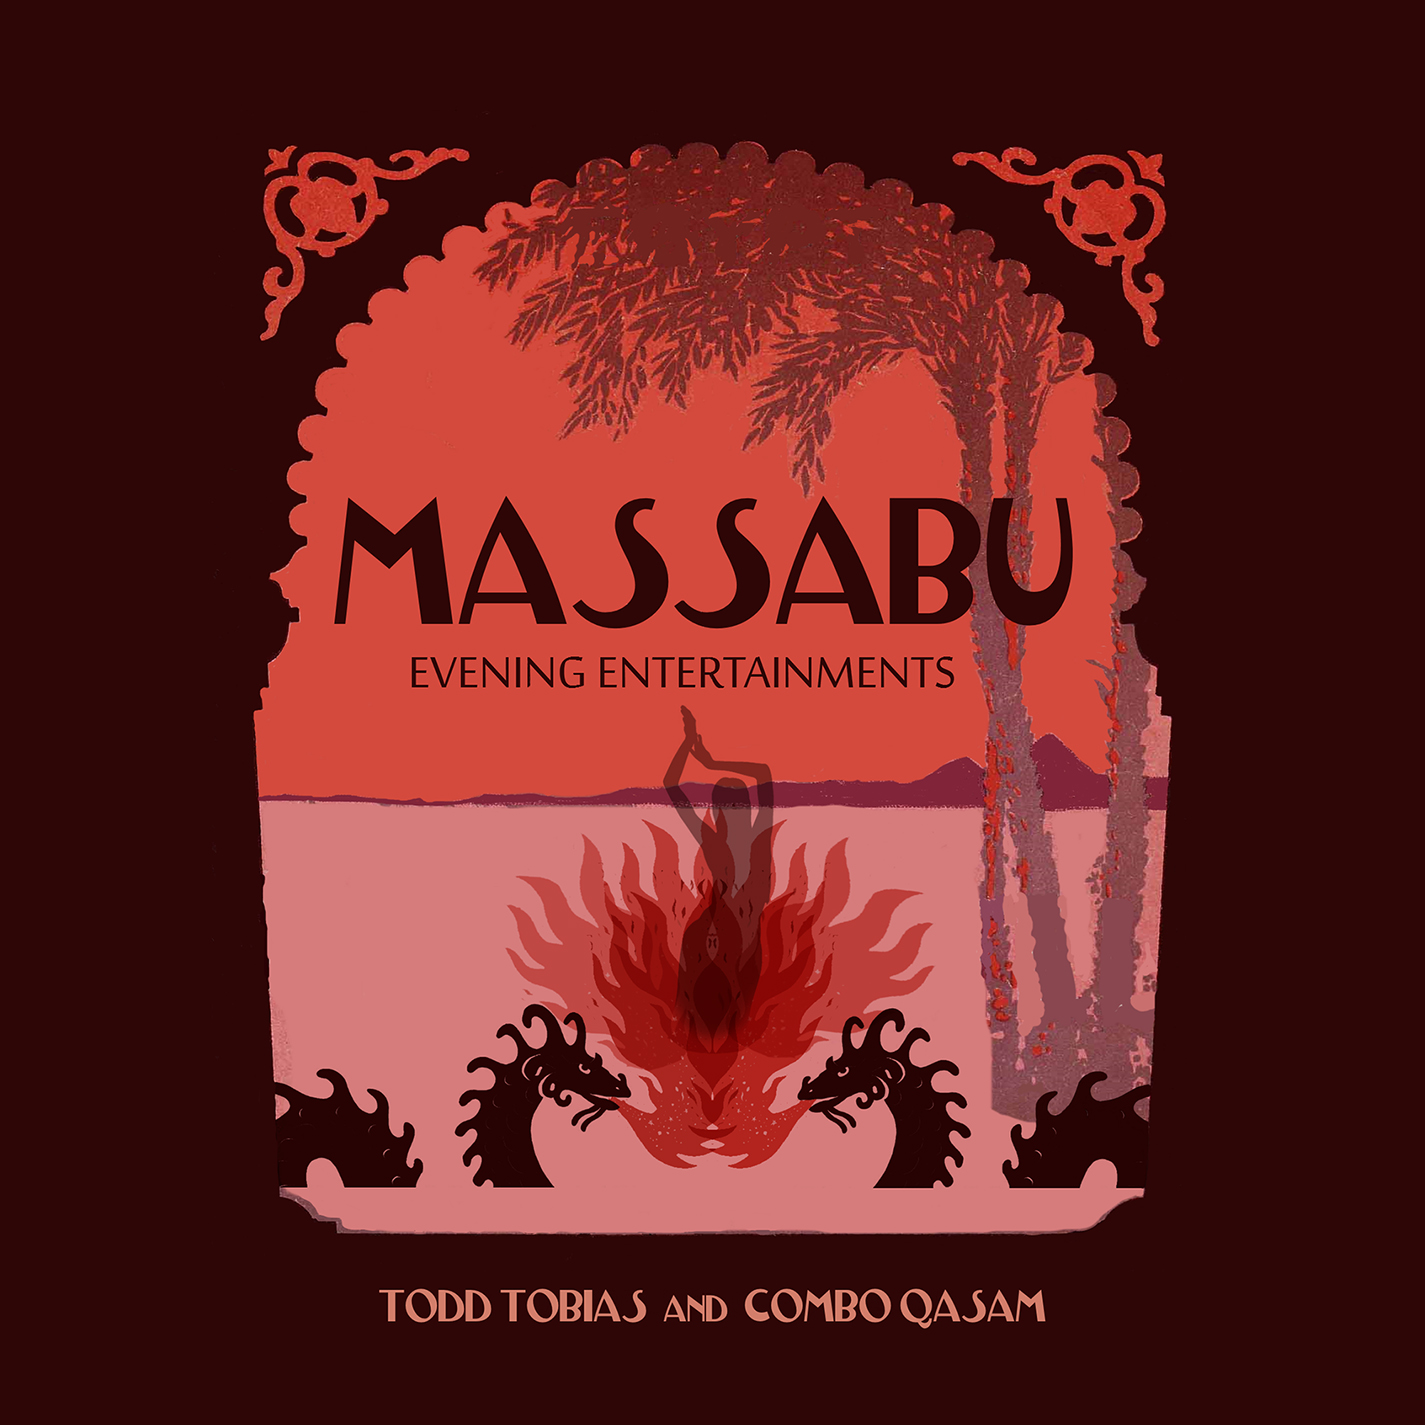 Massabu webcover